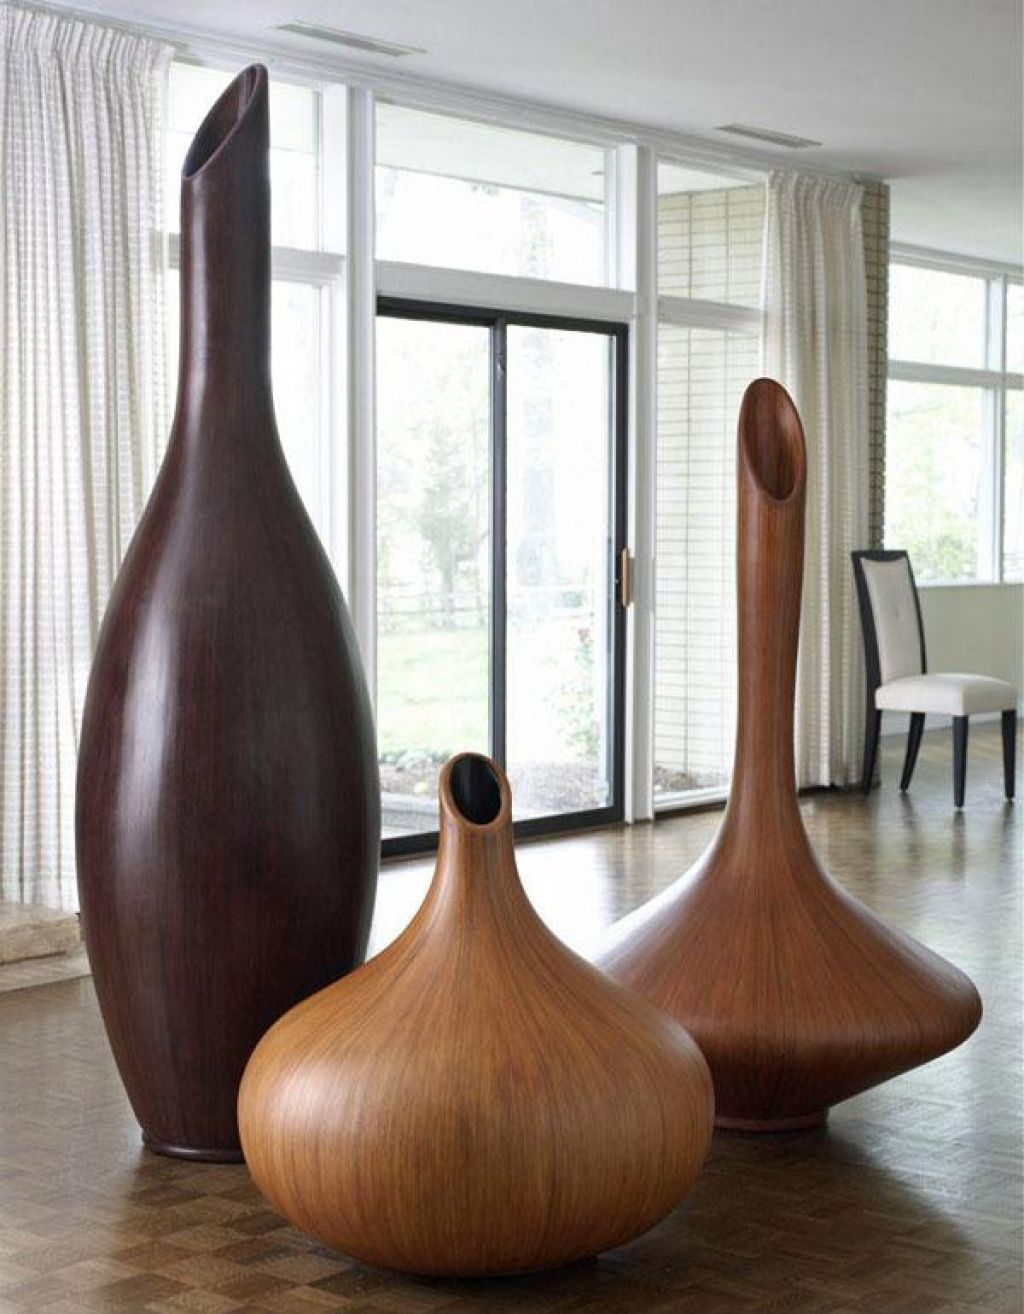 Living Room Vase Decoration Carpet Singapore Amazing Tall Decorative Floor Vases Breathtaking Interior Decor With The Touches Of For